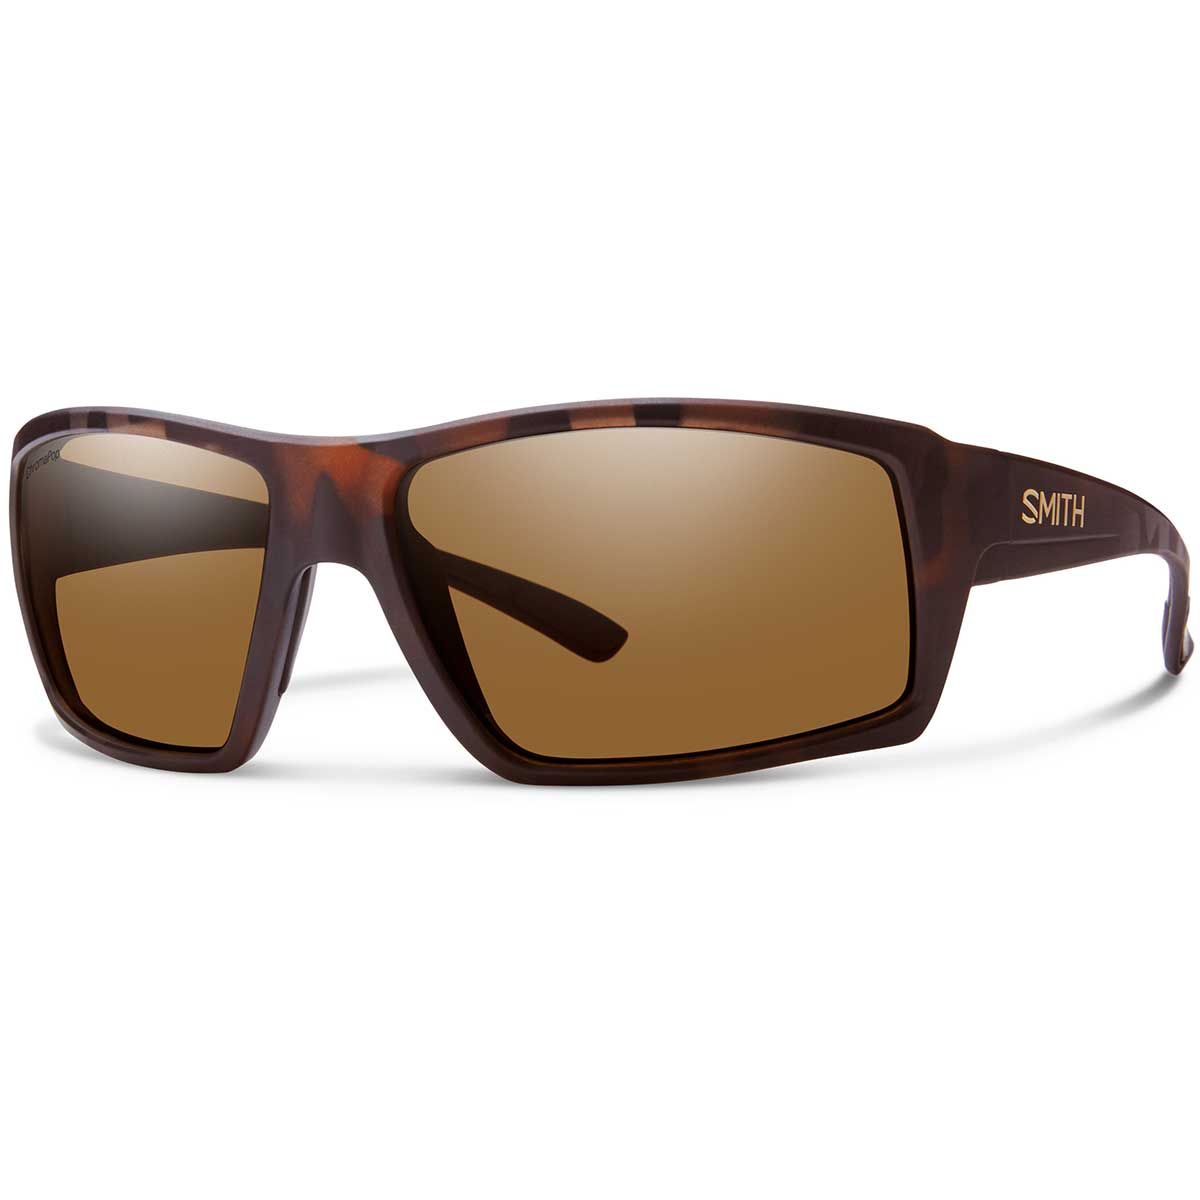 Smith Challis sunglasses in Matte Tortoise with Brown polarized ChromaPop glass lenses